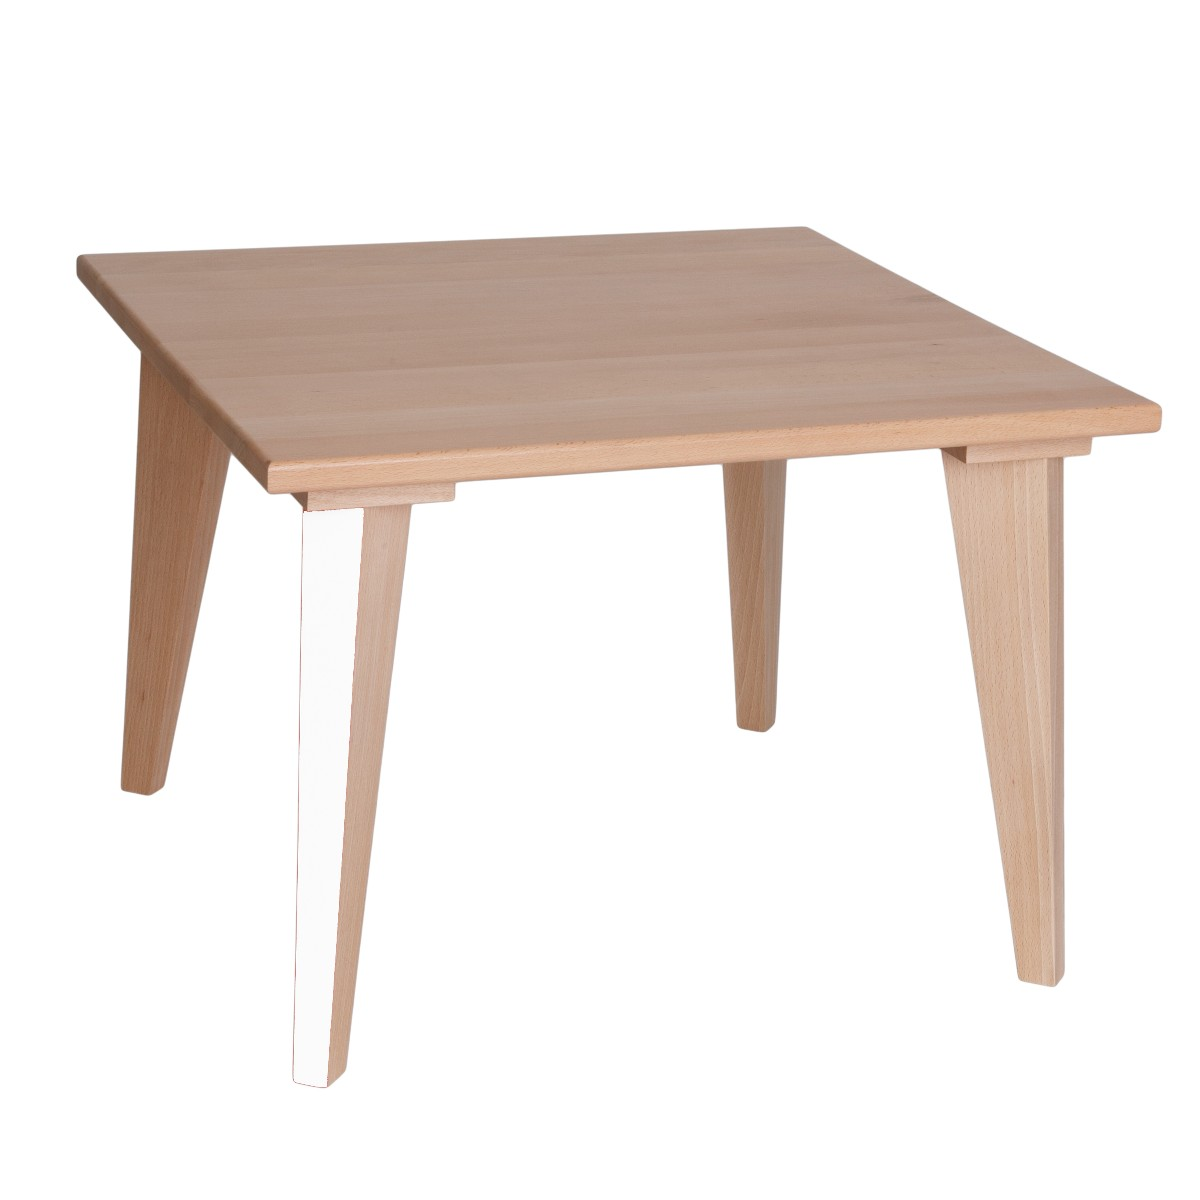 Table basse mini boudoir blanc loft paulette sacha for Table basse et haute a la fois